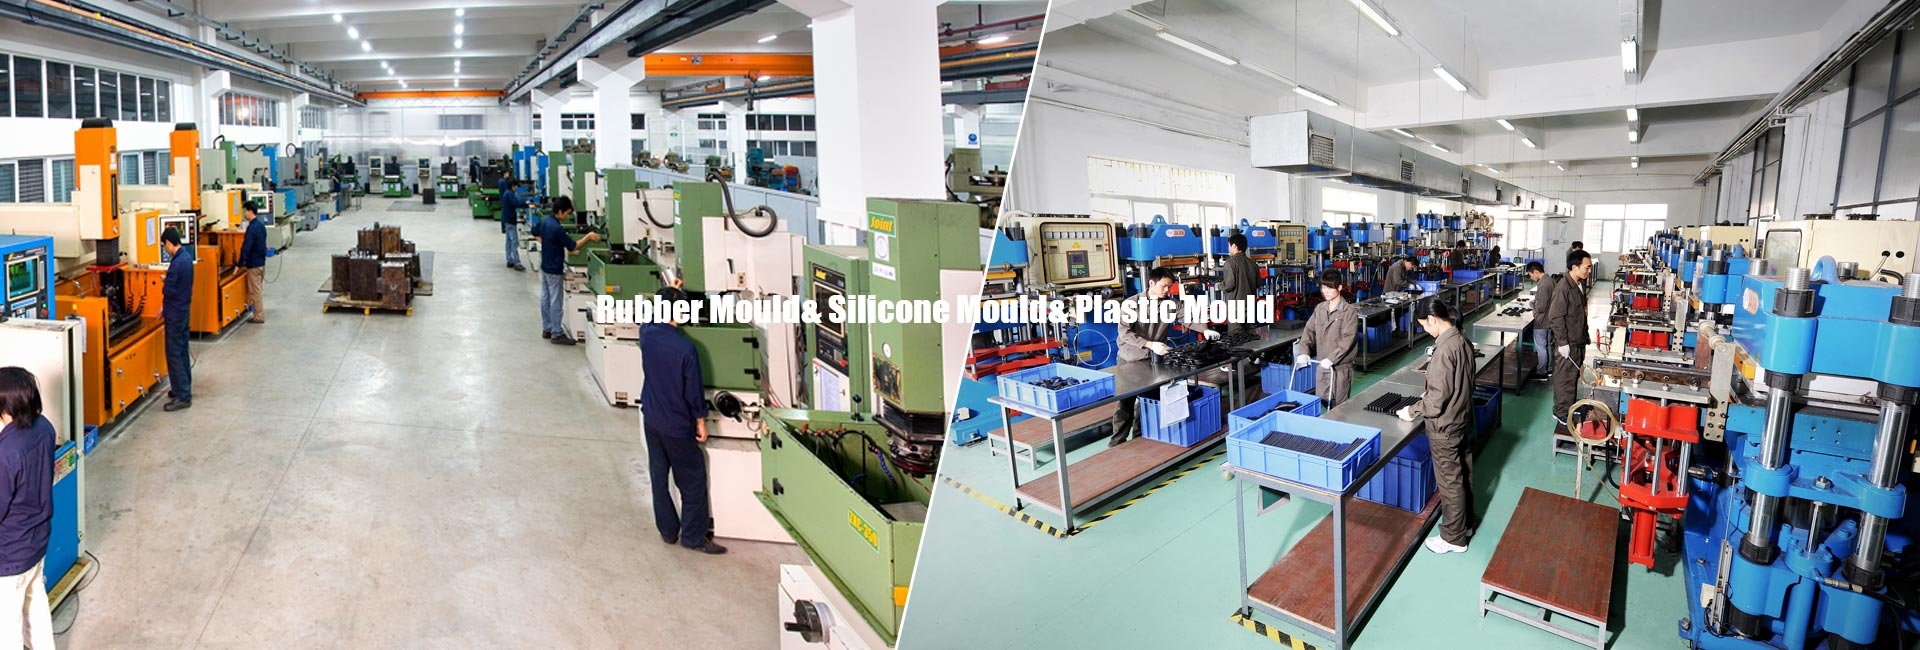 Rubber & Plastic Mould workshop